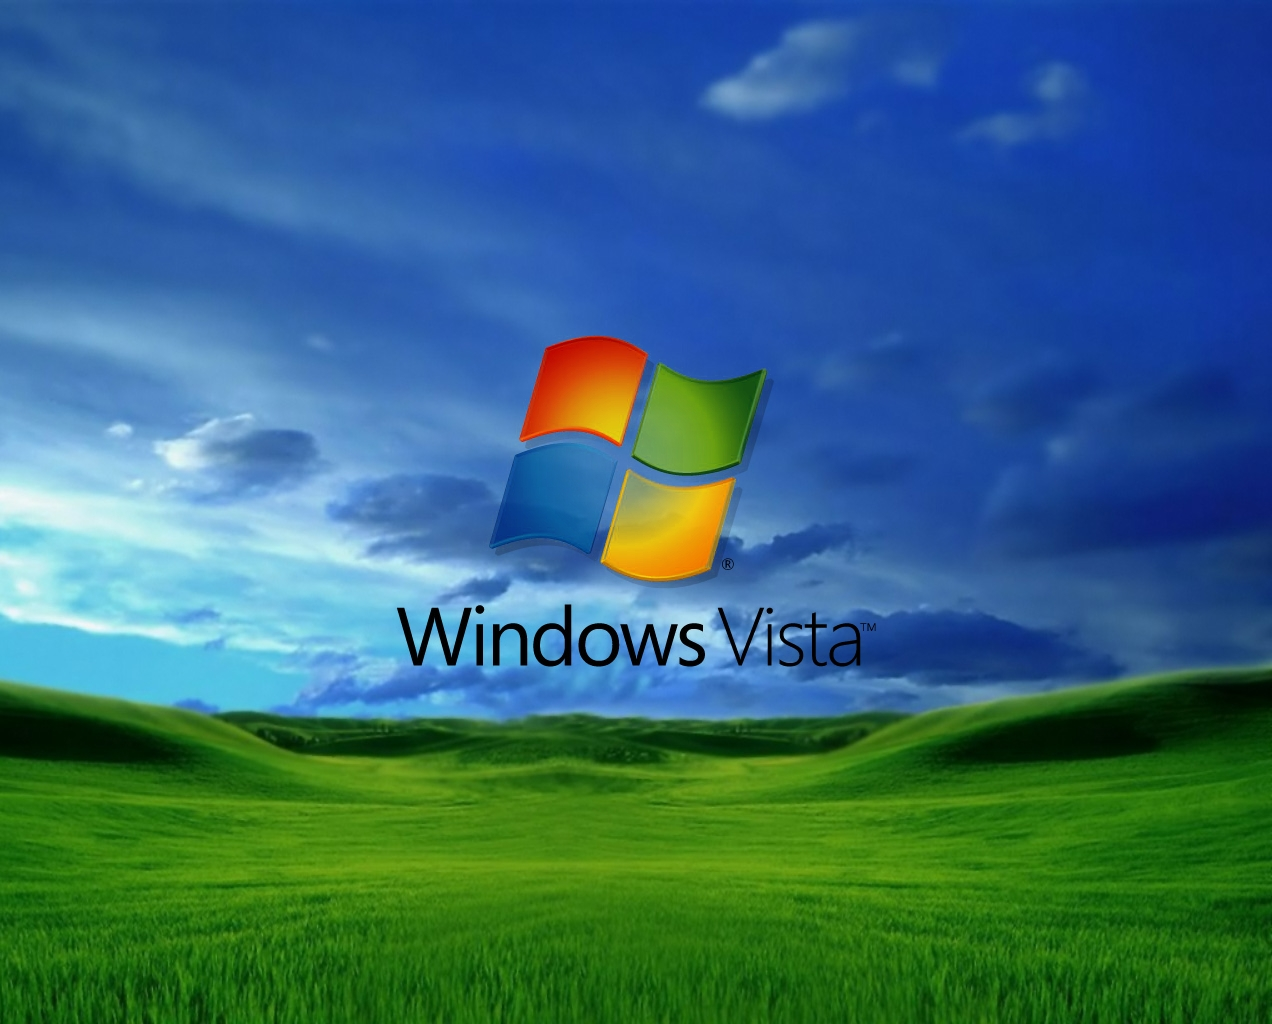 Windows vista ultimate 32 bit iso скачать торрент - 7